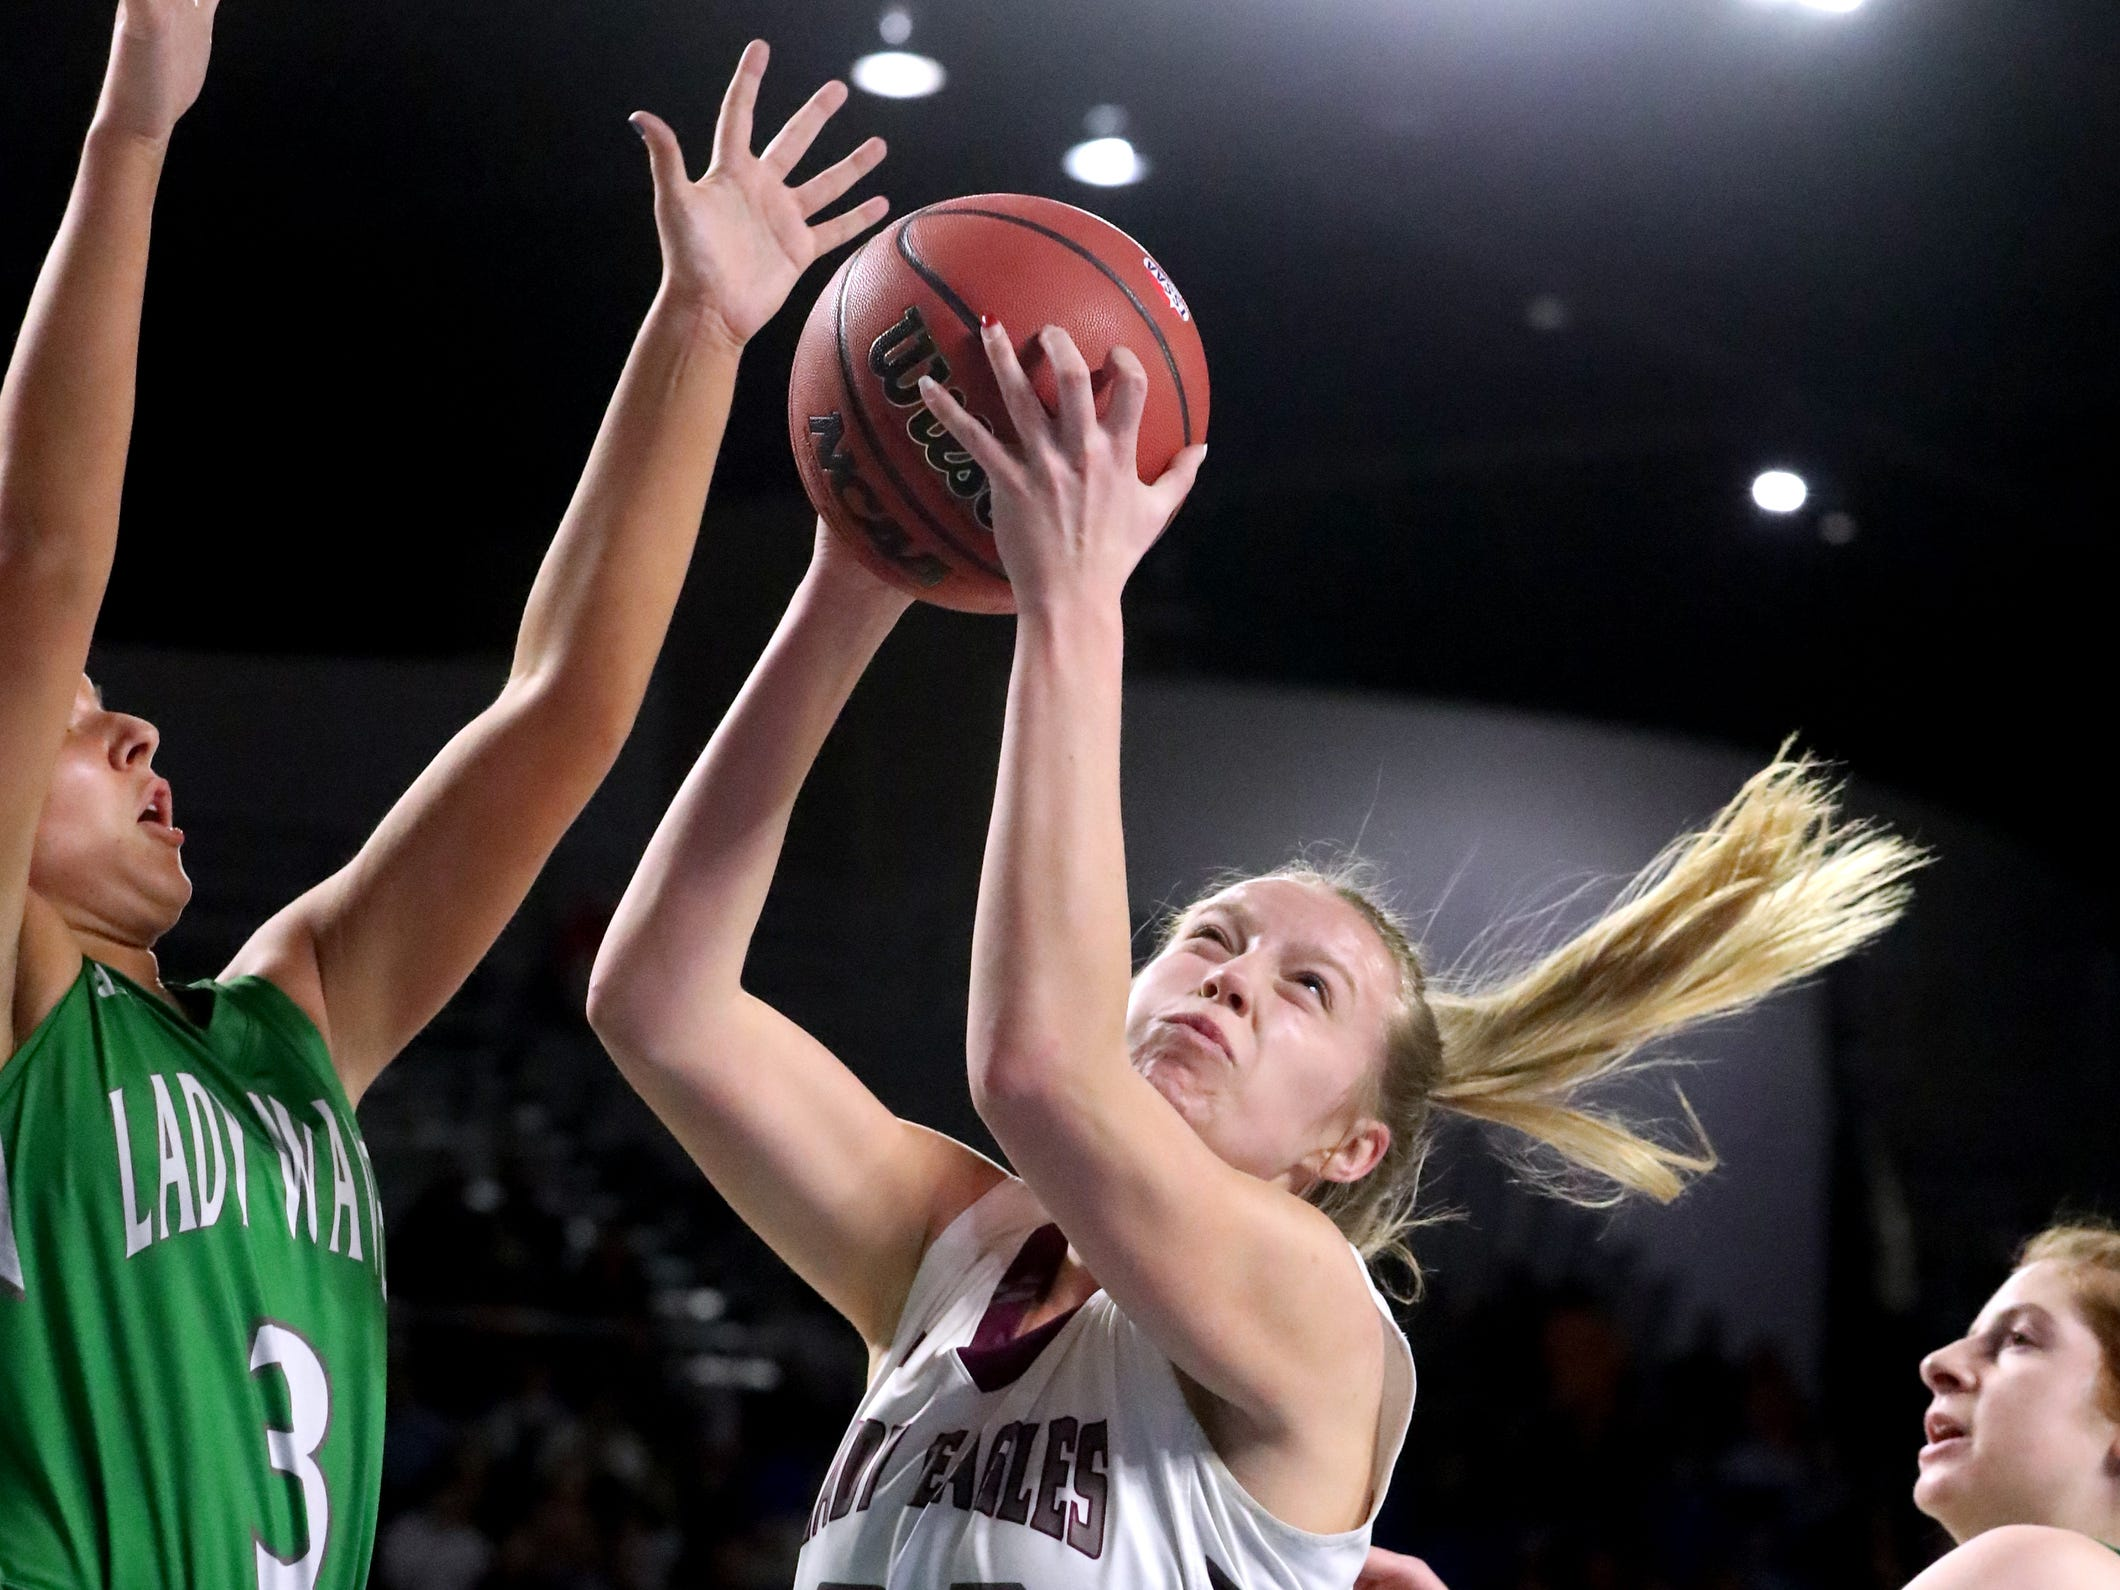 Midway's Macy Young (24) goes up for a shot as Midway's Rebecca Lemasters (3) guards her during the quarterfinal round of the TSSAA Div. 1 Class A Girls State Tournament, on Thursday, March 7, 2019, at Murphy Center in Murfreesboro, Tenn.